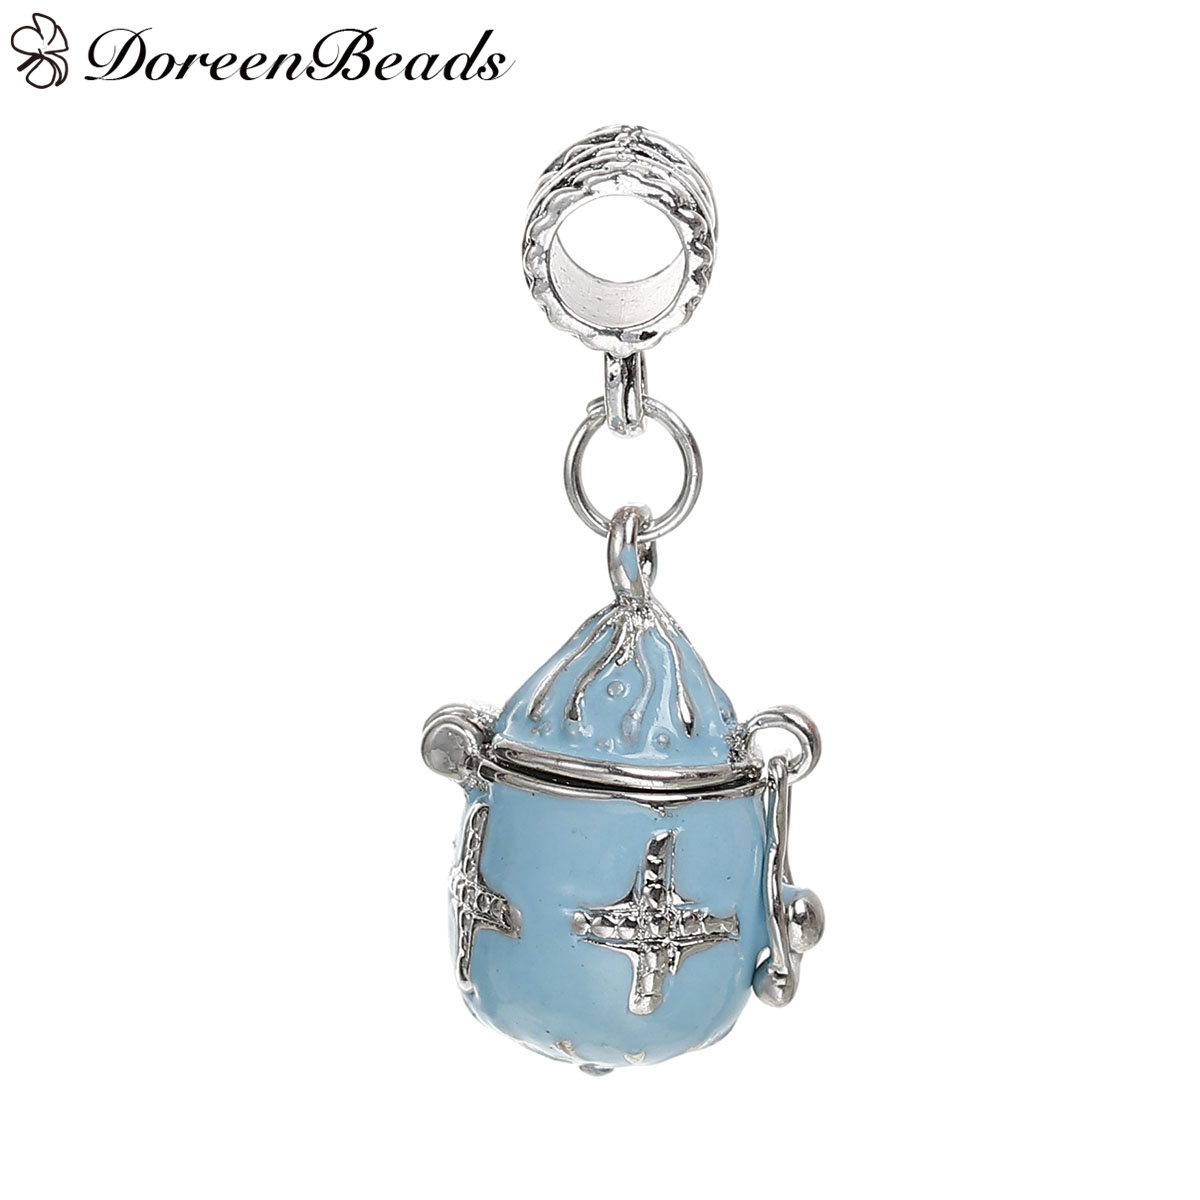 "DoreenBeads European Large Hole Charm Beads Prayer Box Silver Tone Cross Blue Enamel Can Open 34mm(1 3/8"")x 15mm,1 PC 2016 new(China (Mainland))"